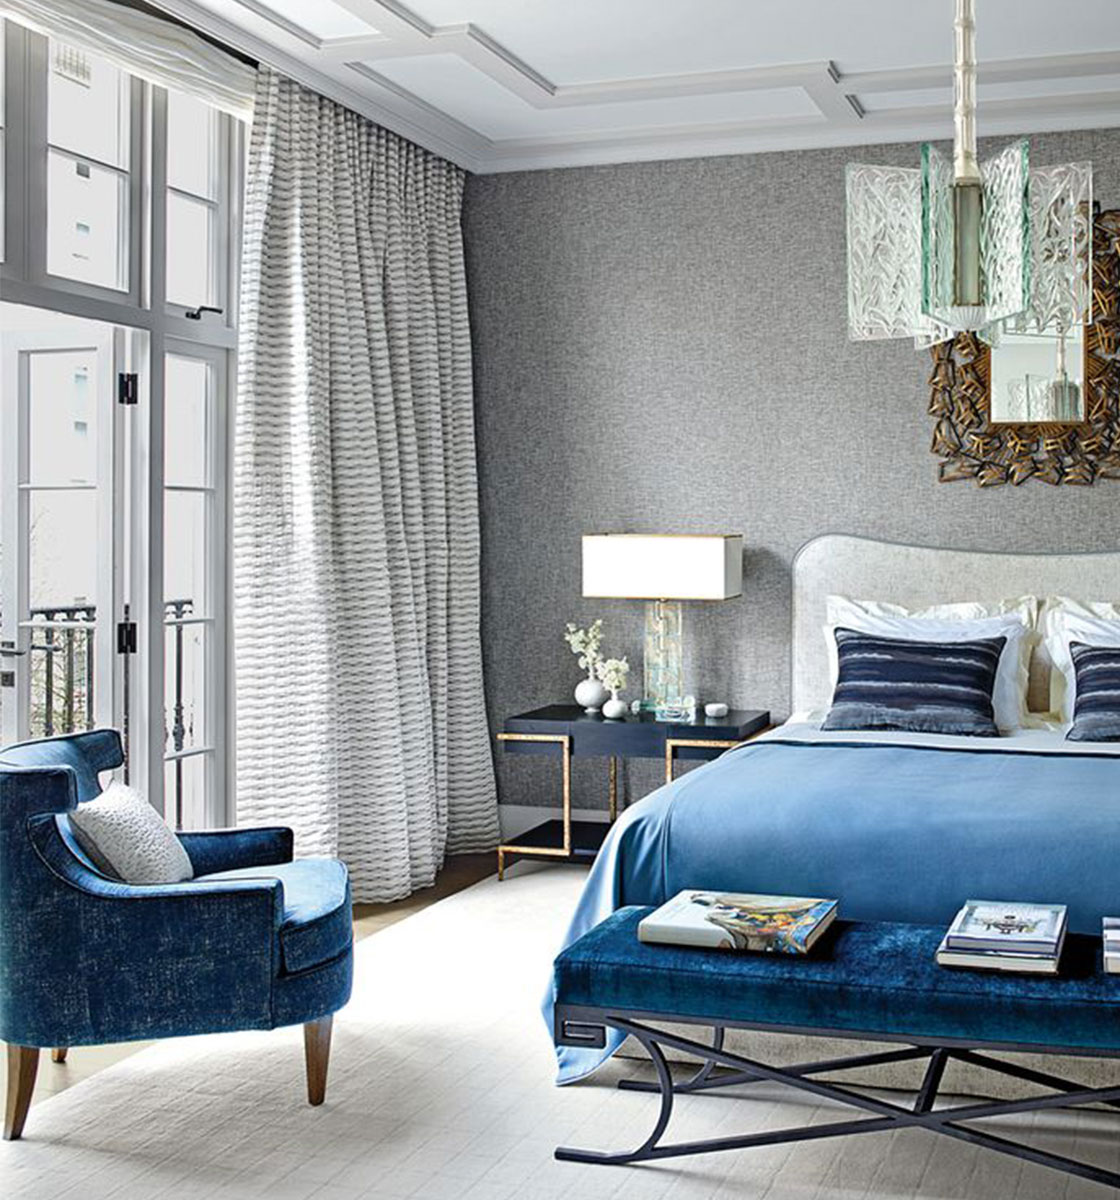 blue chair in bedroom with blue throw on bed